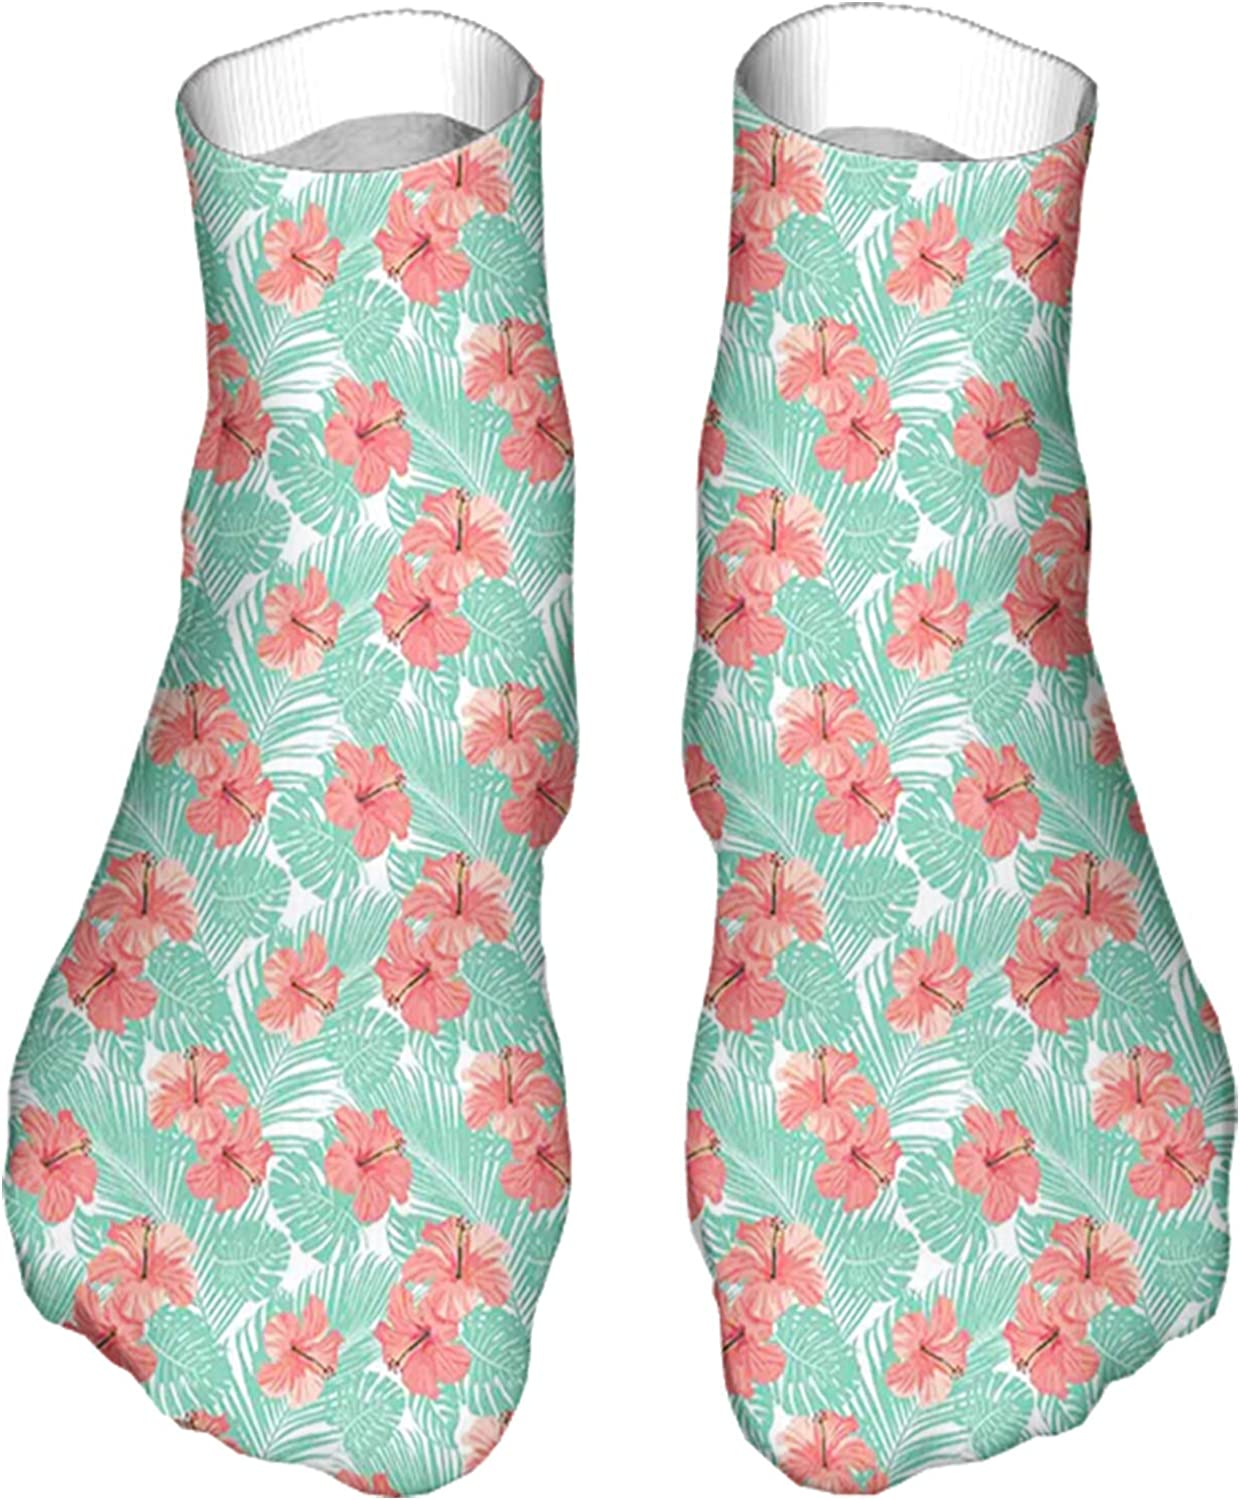 Men's and Women's Fun Socks Printed Cool Novelty Funny Socks,Exquisite Hibiscus Blossom with Artistic Leaf Beach Paradis